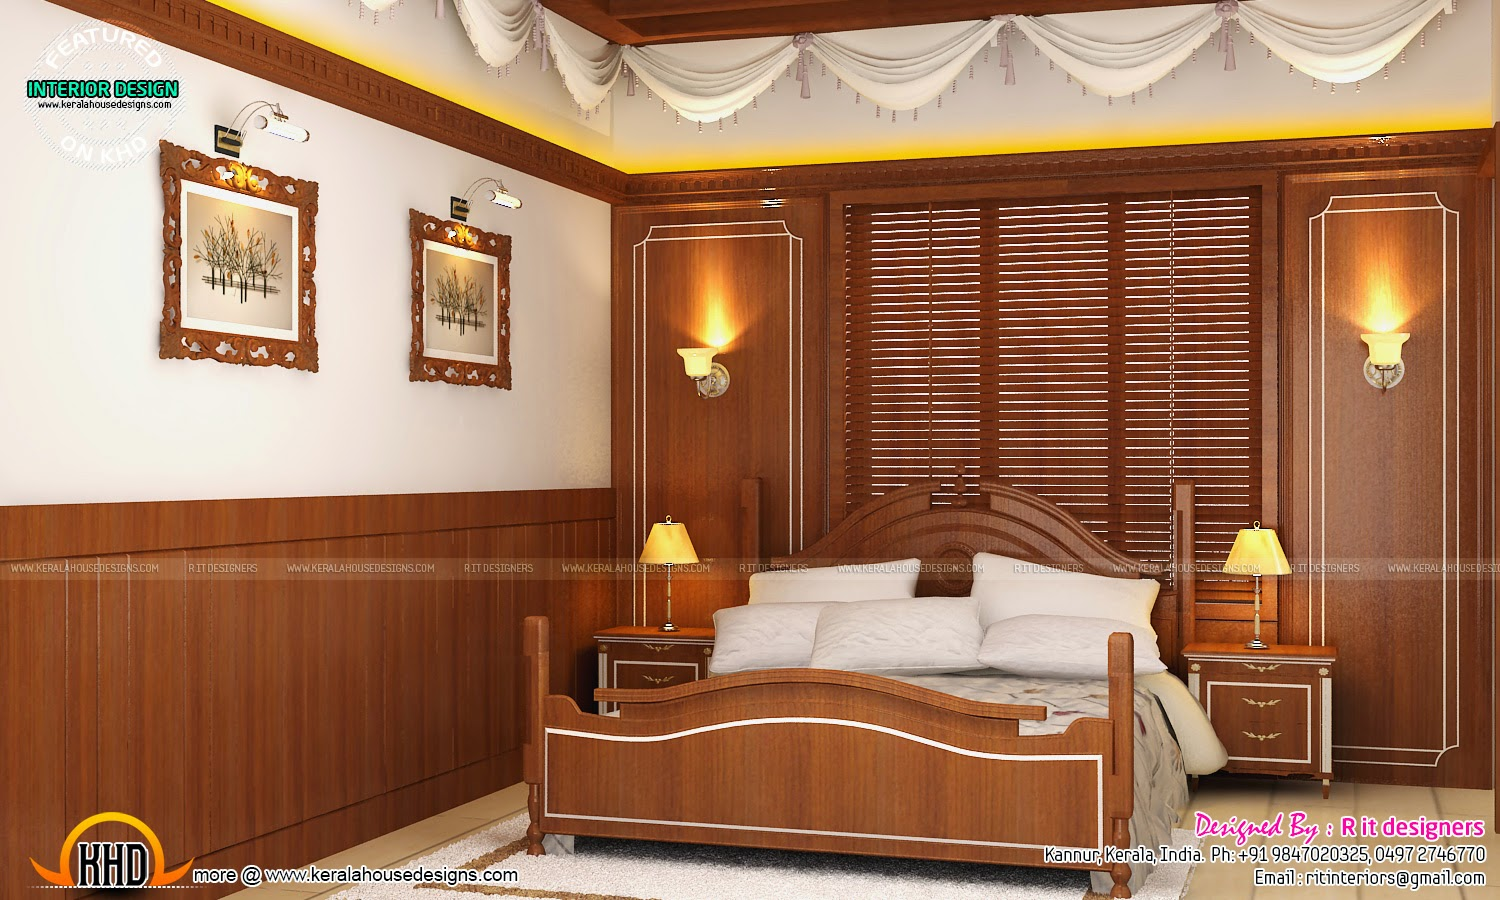 Flat roof house tamilnadu keralahousedesigns for New house bedroom ideas